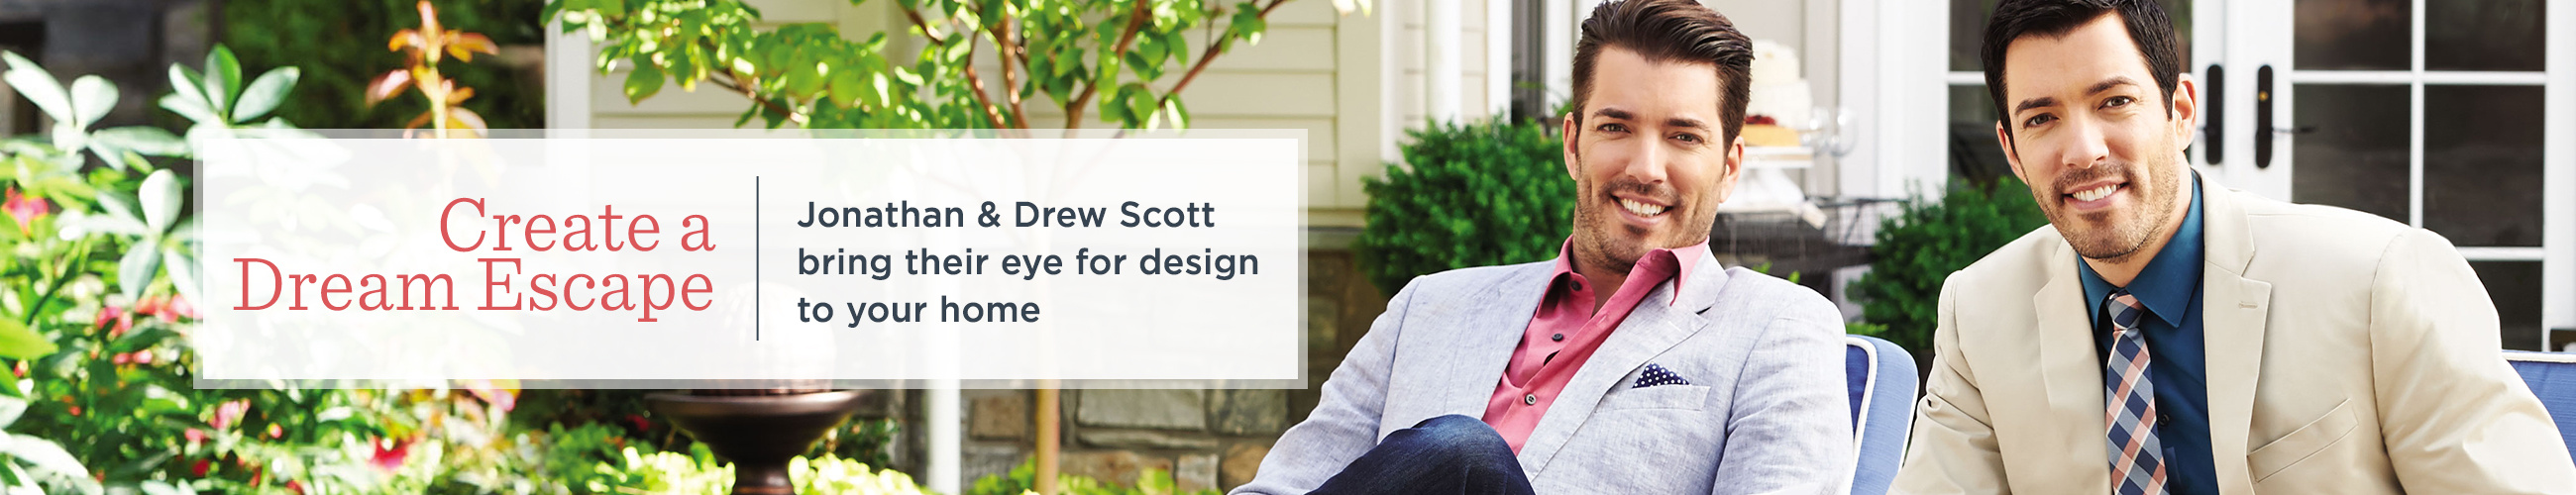 Create a Dream Escape  Jonathan & Drew Scott bring their eye for design to your home